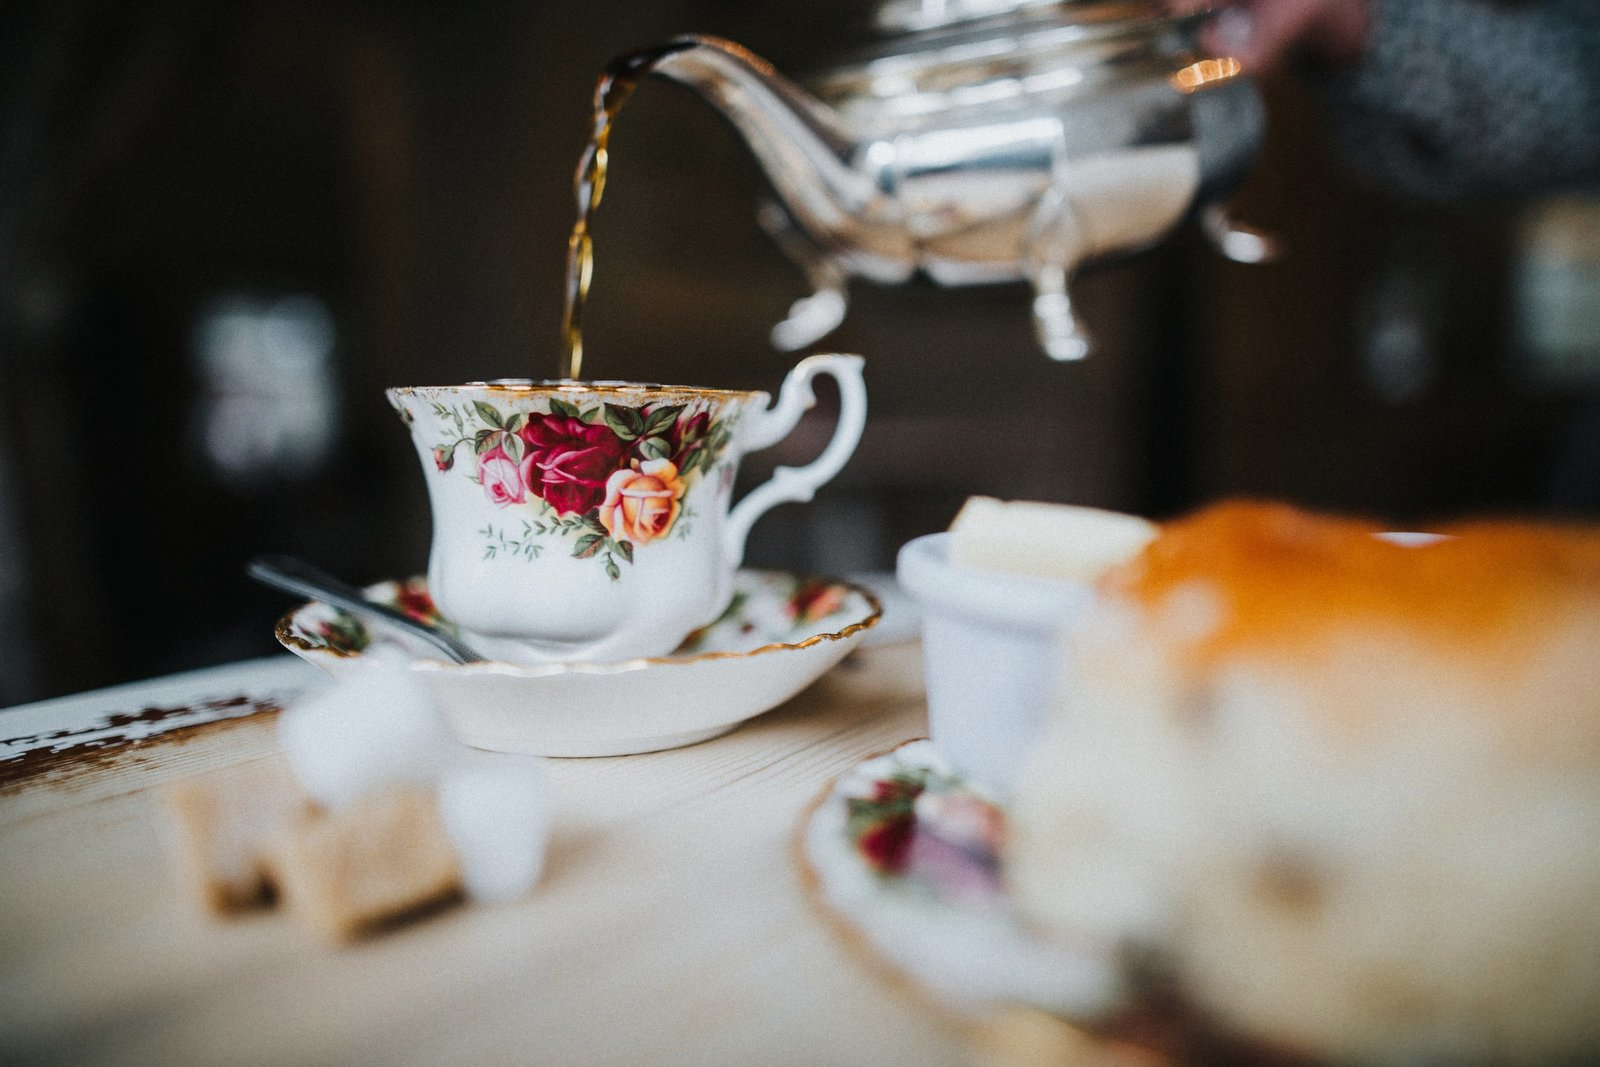 Tea being poured into vintage china teacup at Baldry's Tearoom in The Lake District